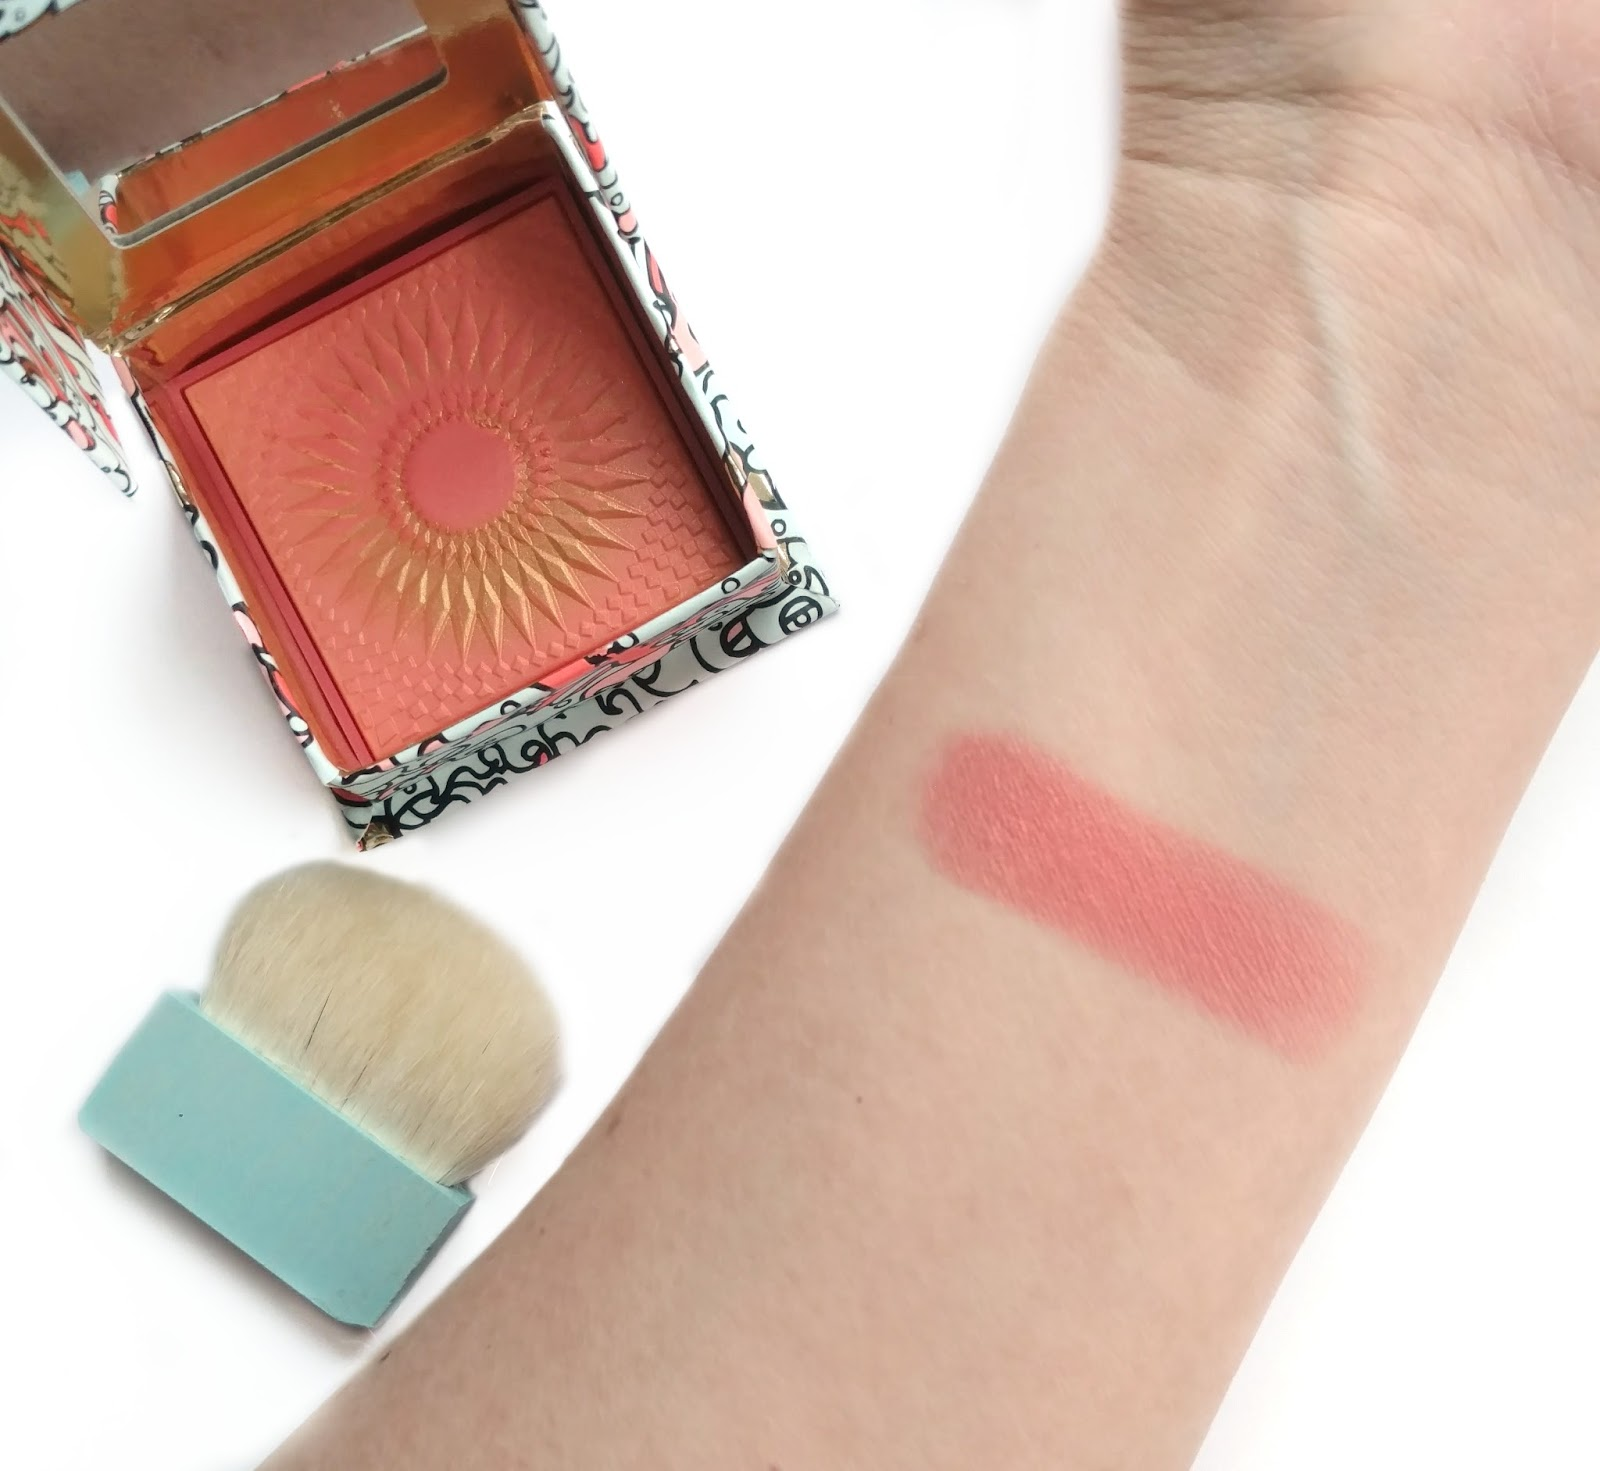 benefit galifornia blush review swatches beauddiction. Black Bedroom Furniture Sets. Home Design Ideas